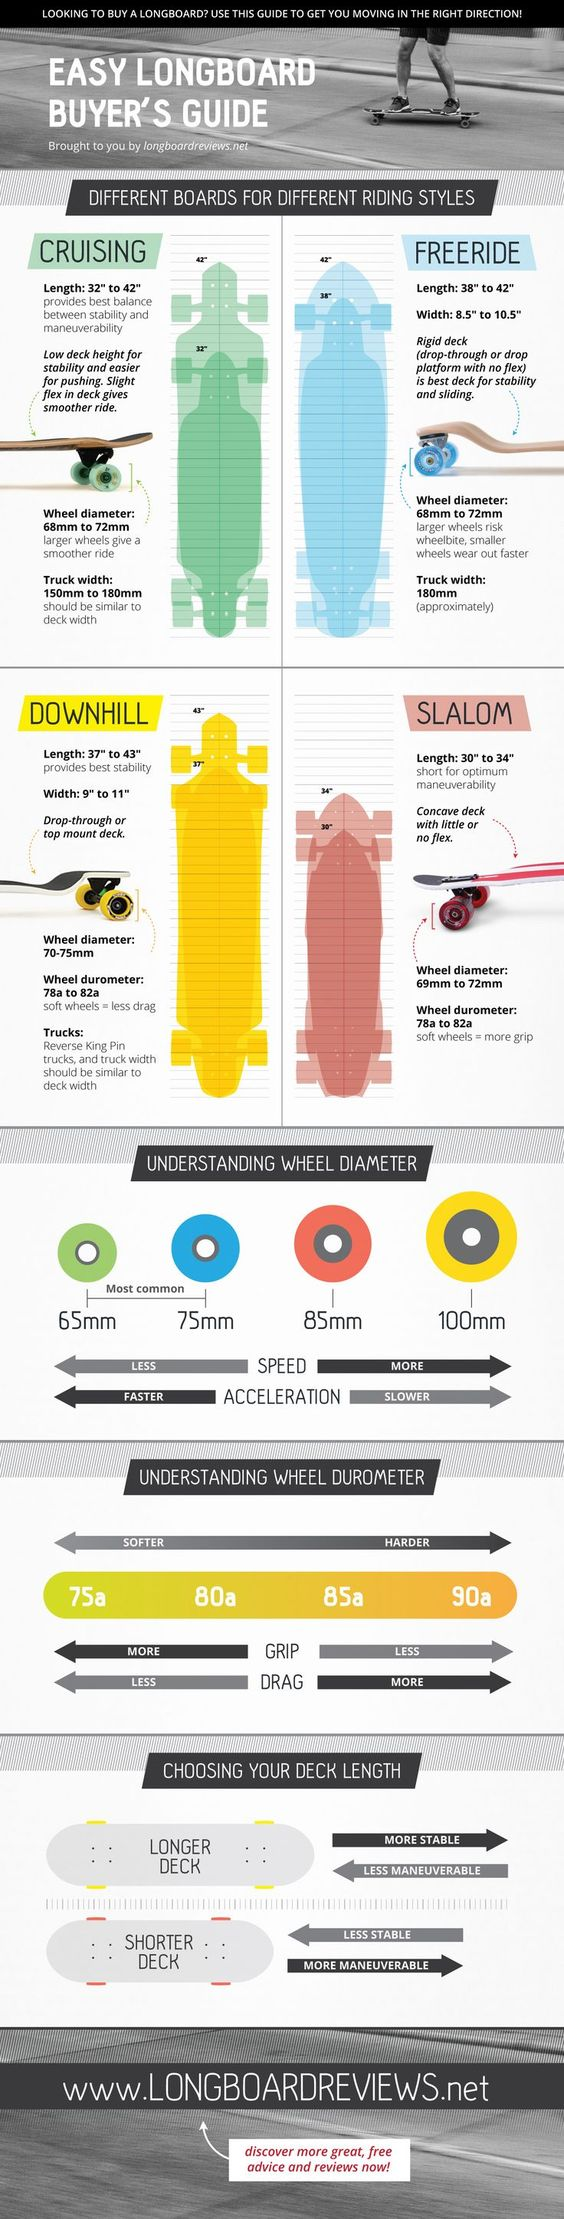 How to choose a longboard: